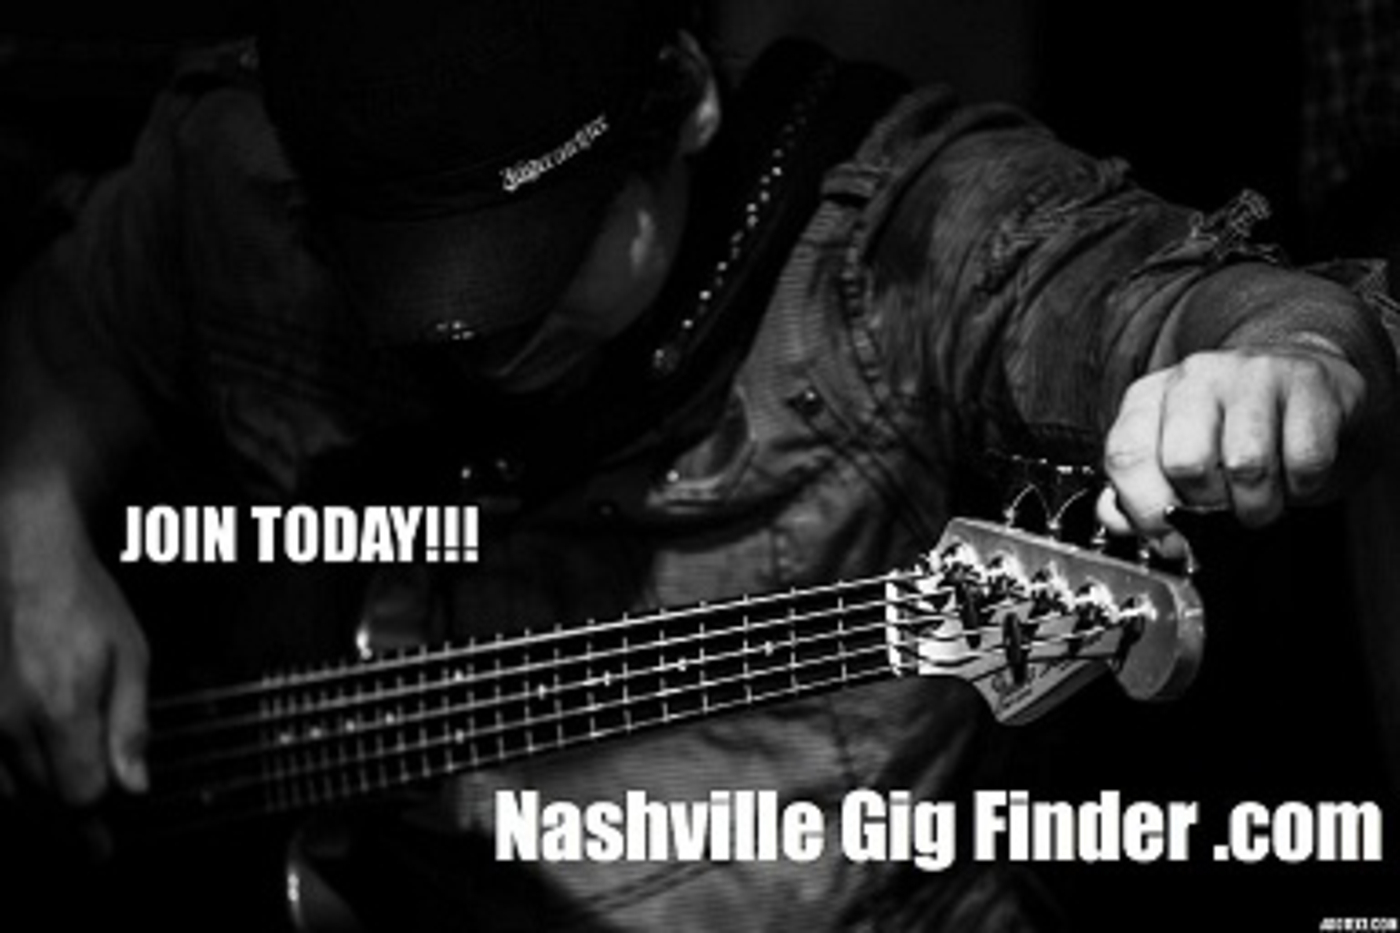 Nashville Gig Finder - Management company in Nashville TN